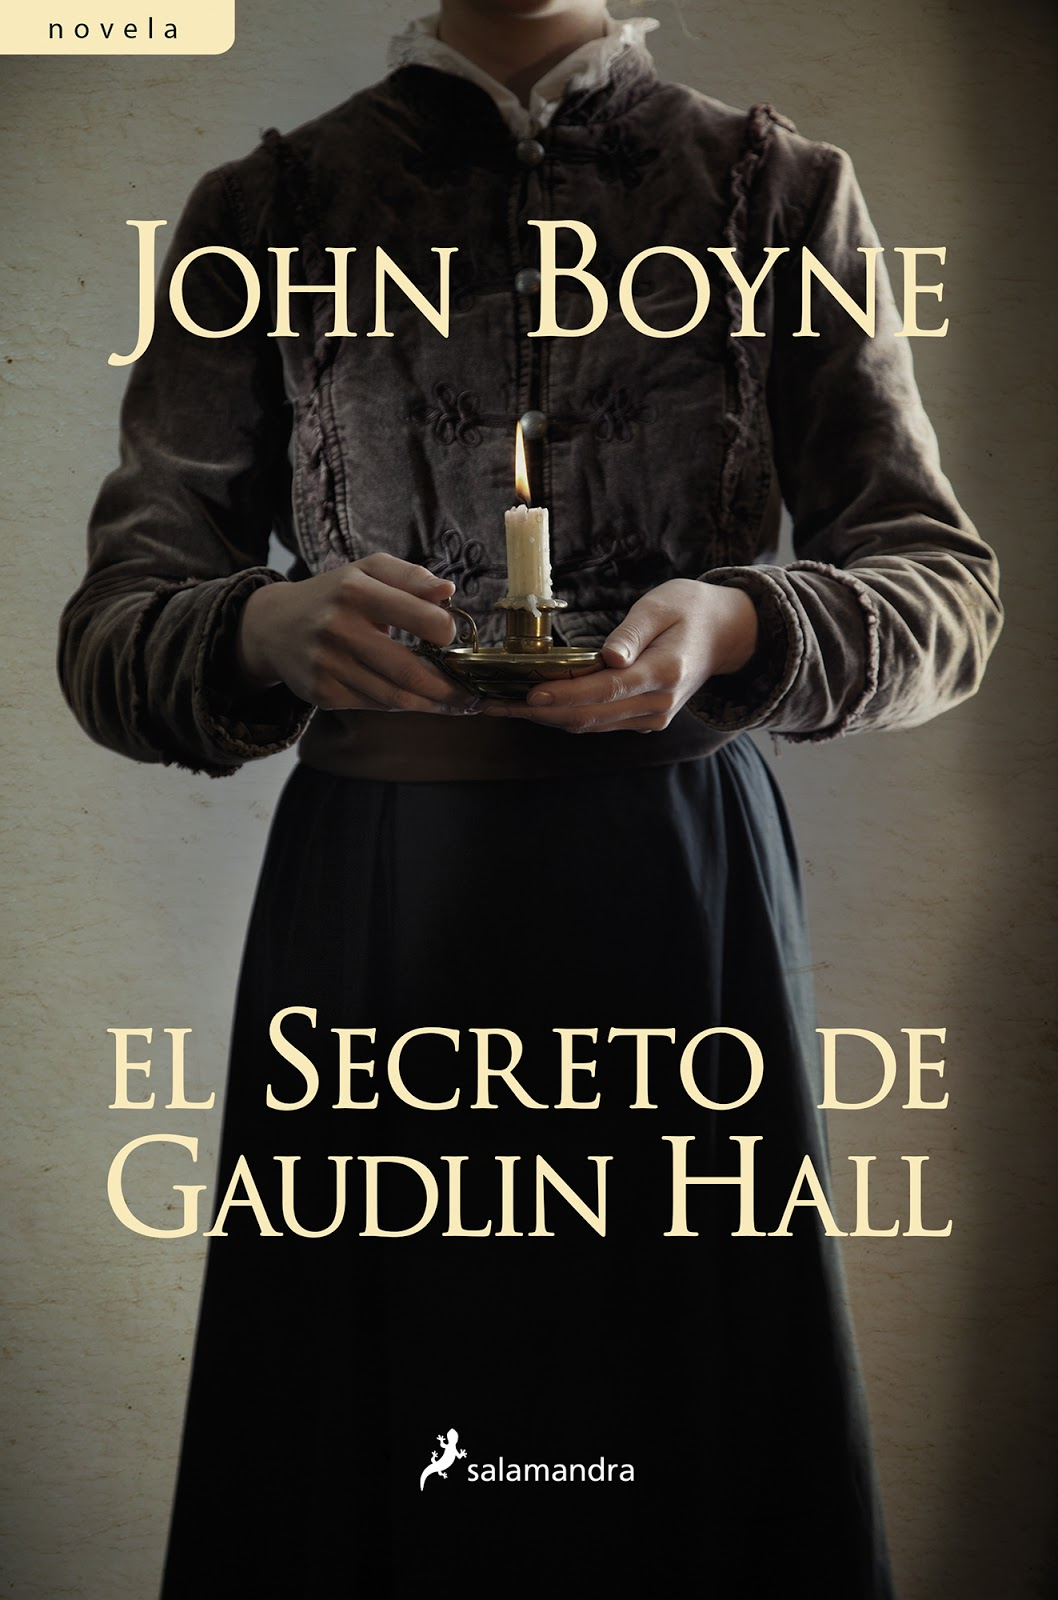 book, el secreto de gaudlin hall, john boyne, libro, literatura, niño del pijama de rayas, opinion, paginas gratis, reseña, review, this house is haunted